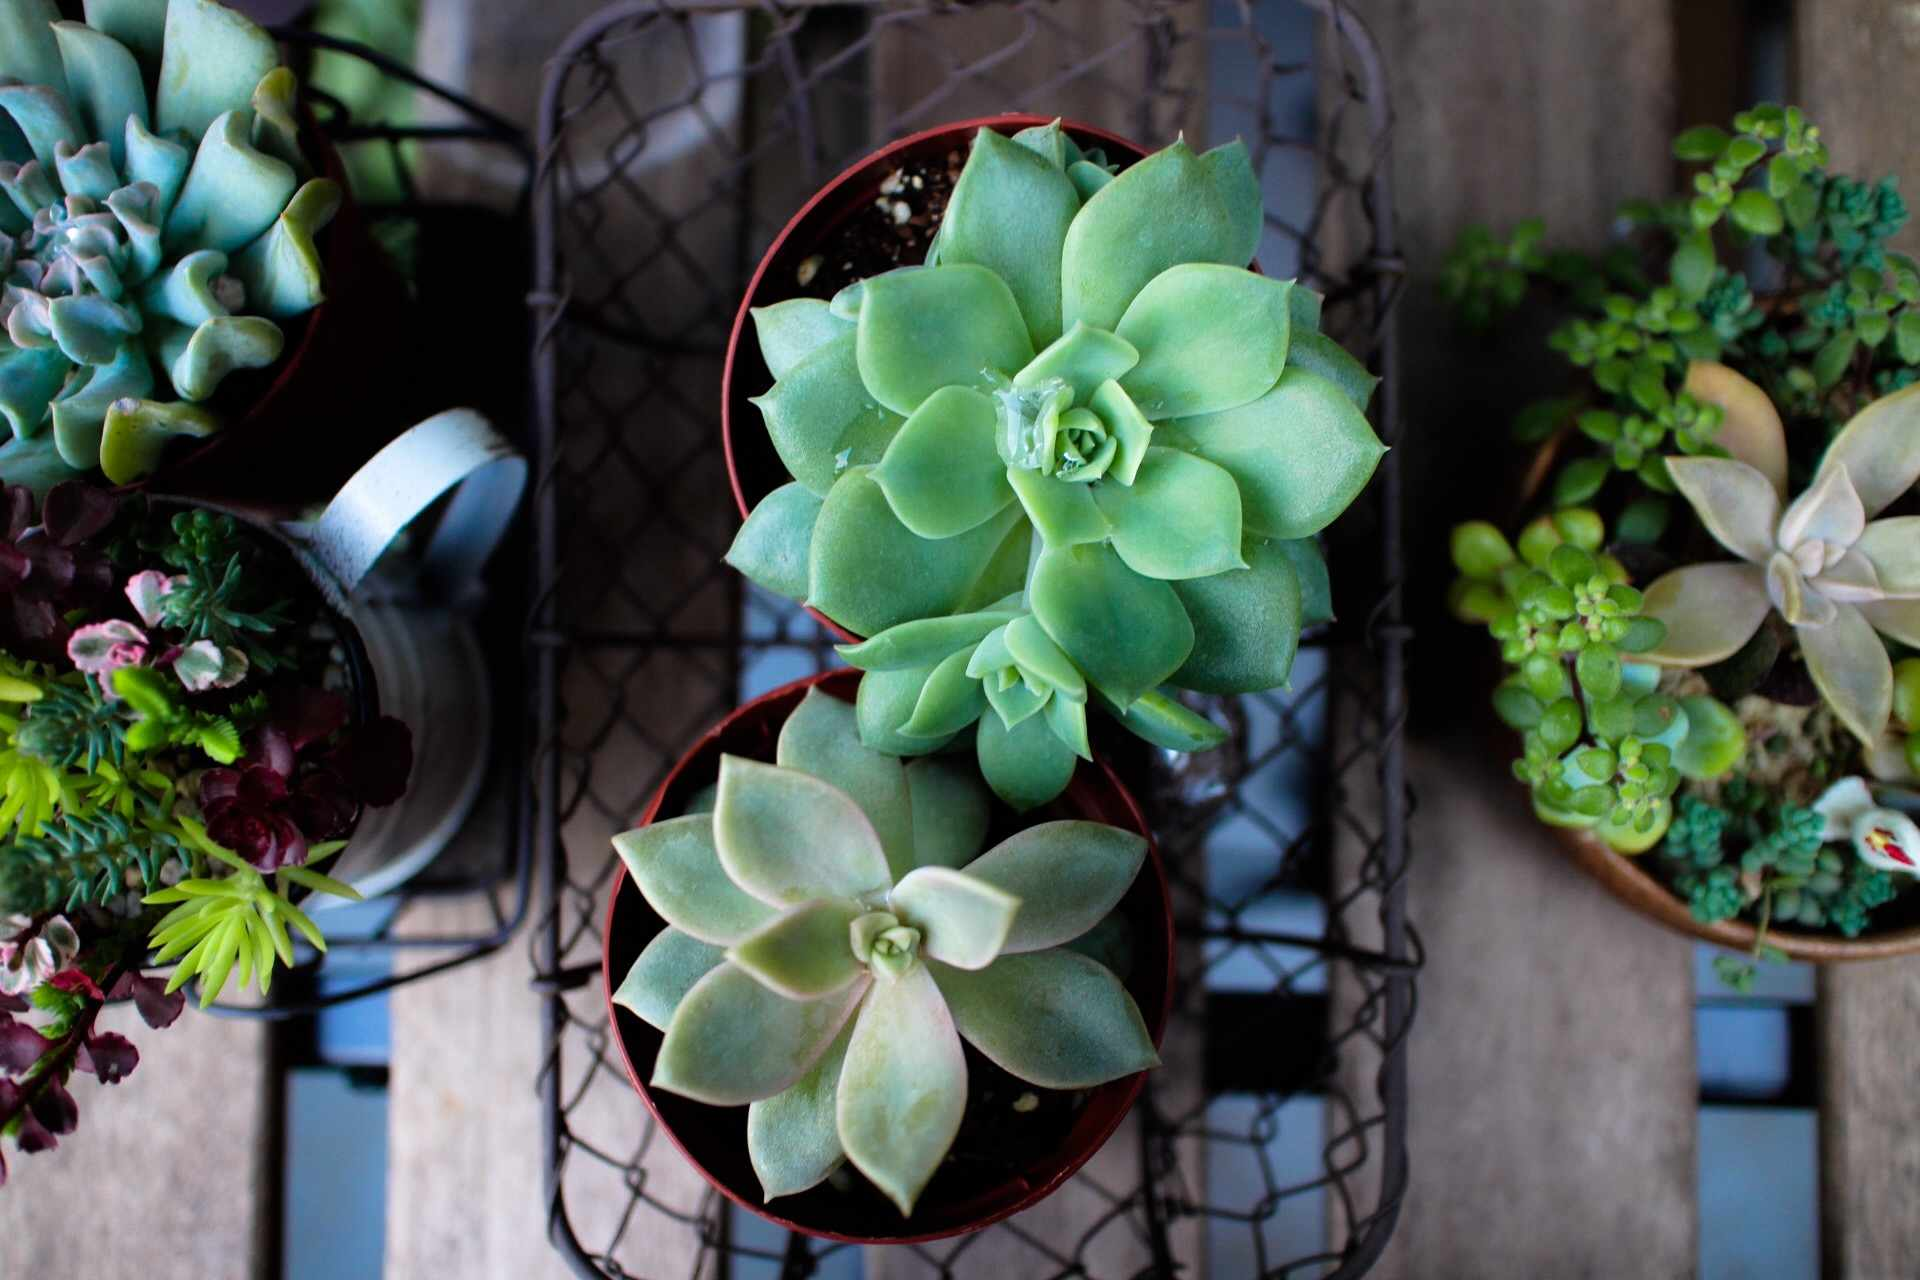 Overview of several pots of succulent plants